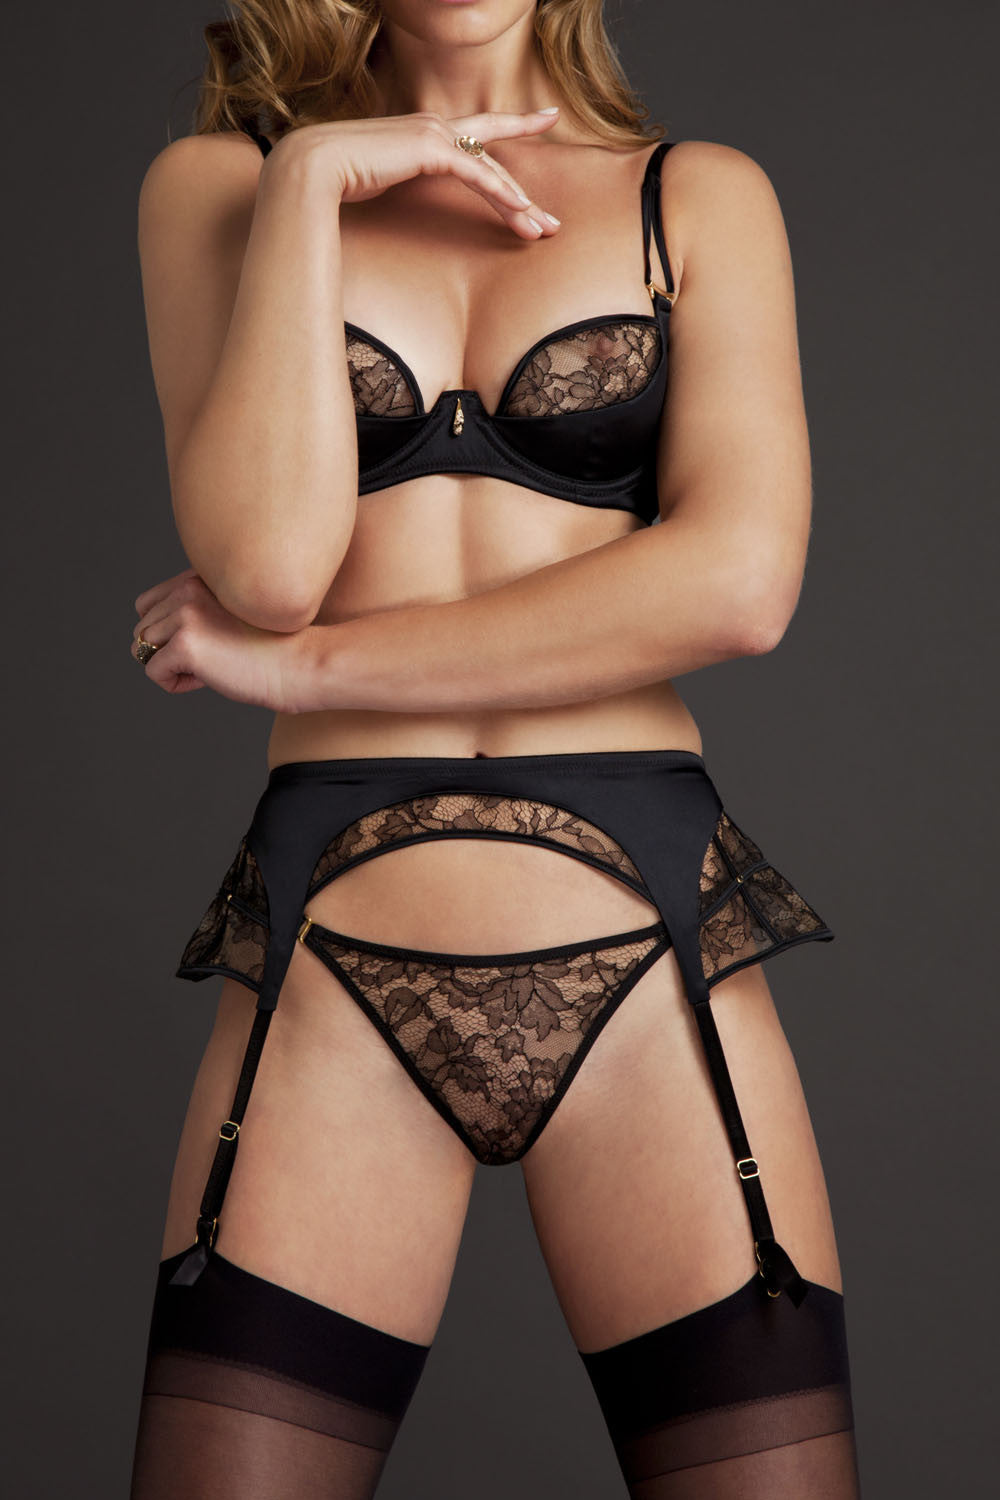 Luxury black lace suspender belt and lingerie set in high end sheer lace and black satin